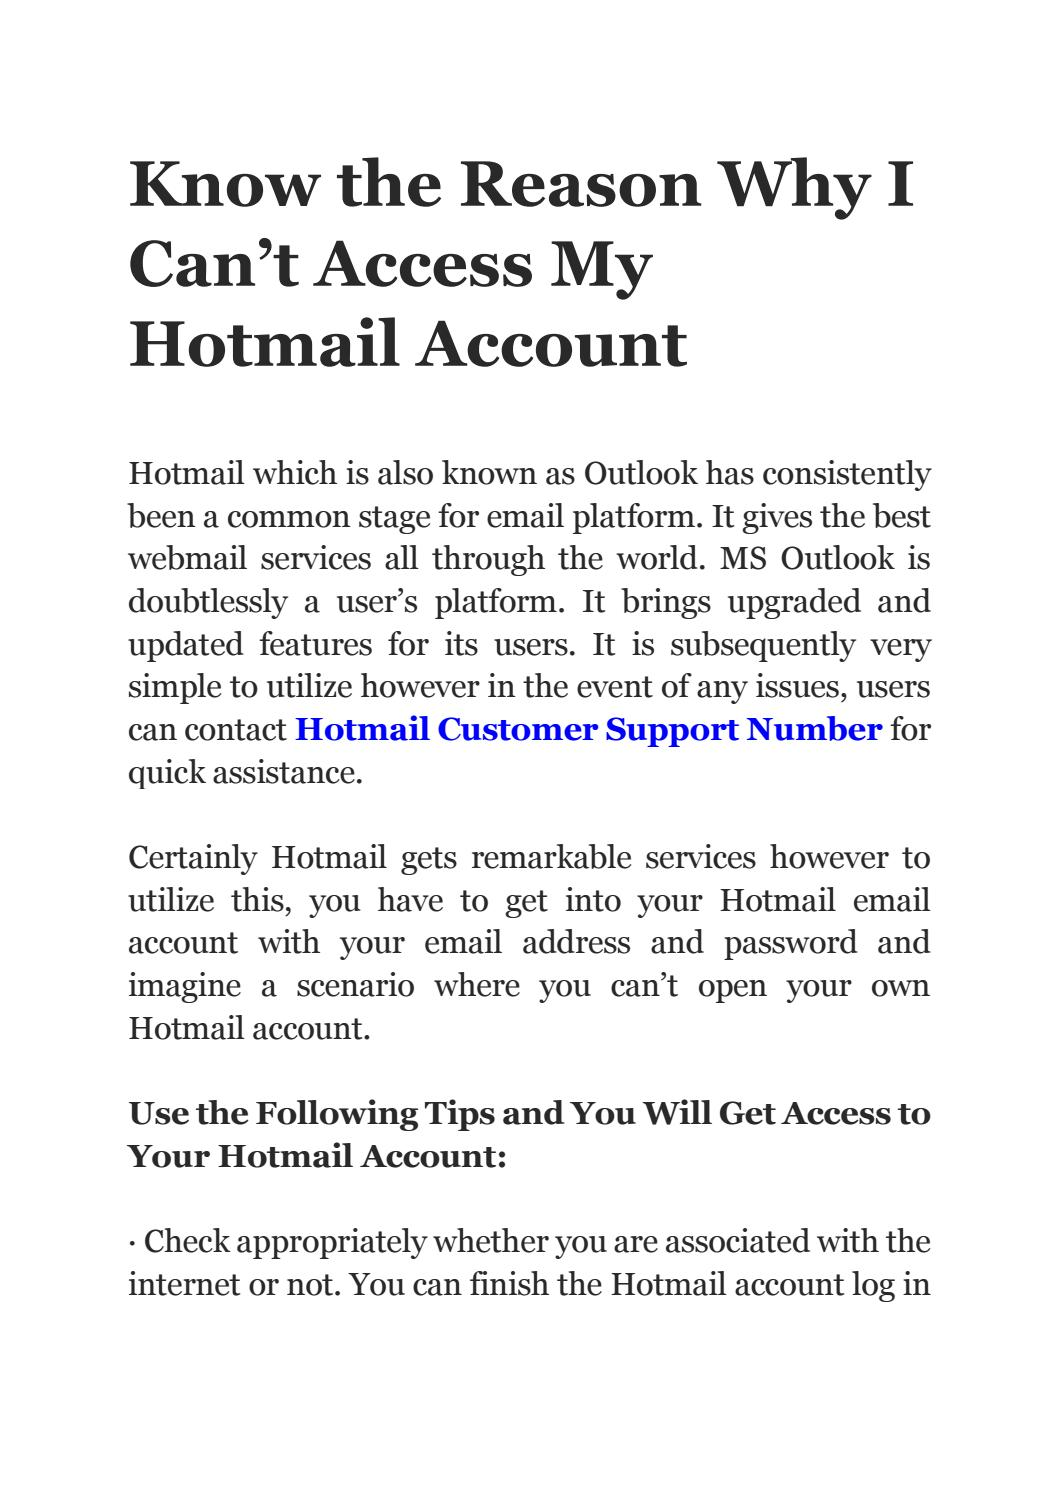 Know The Reason Why I Can T Access My Hotmail Account By Ehowtech Issuu